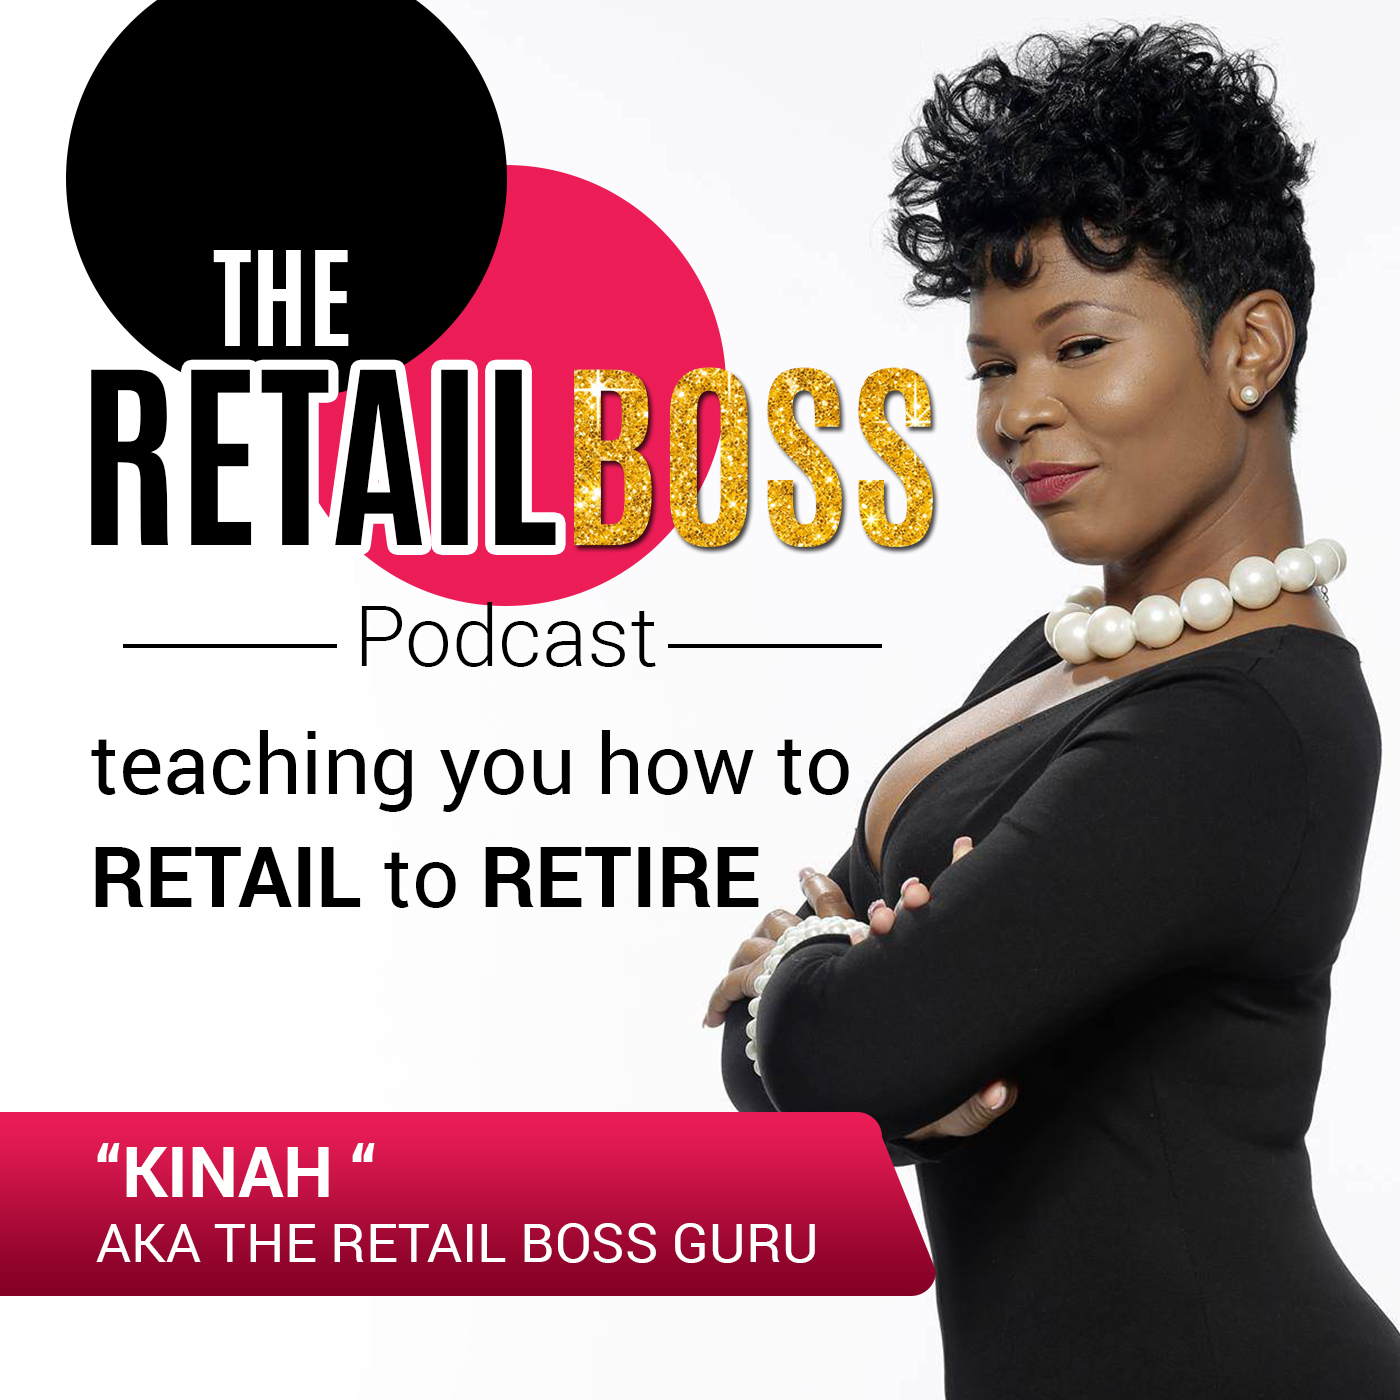 The RetailBoss Podcast